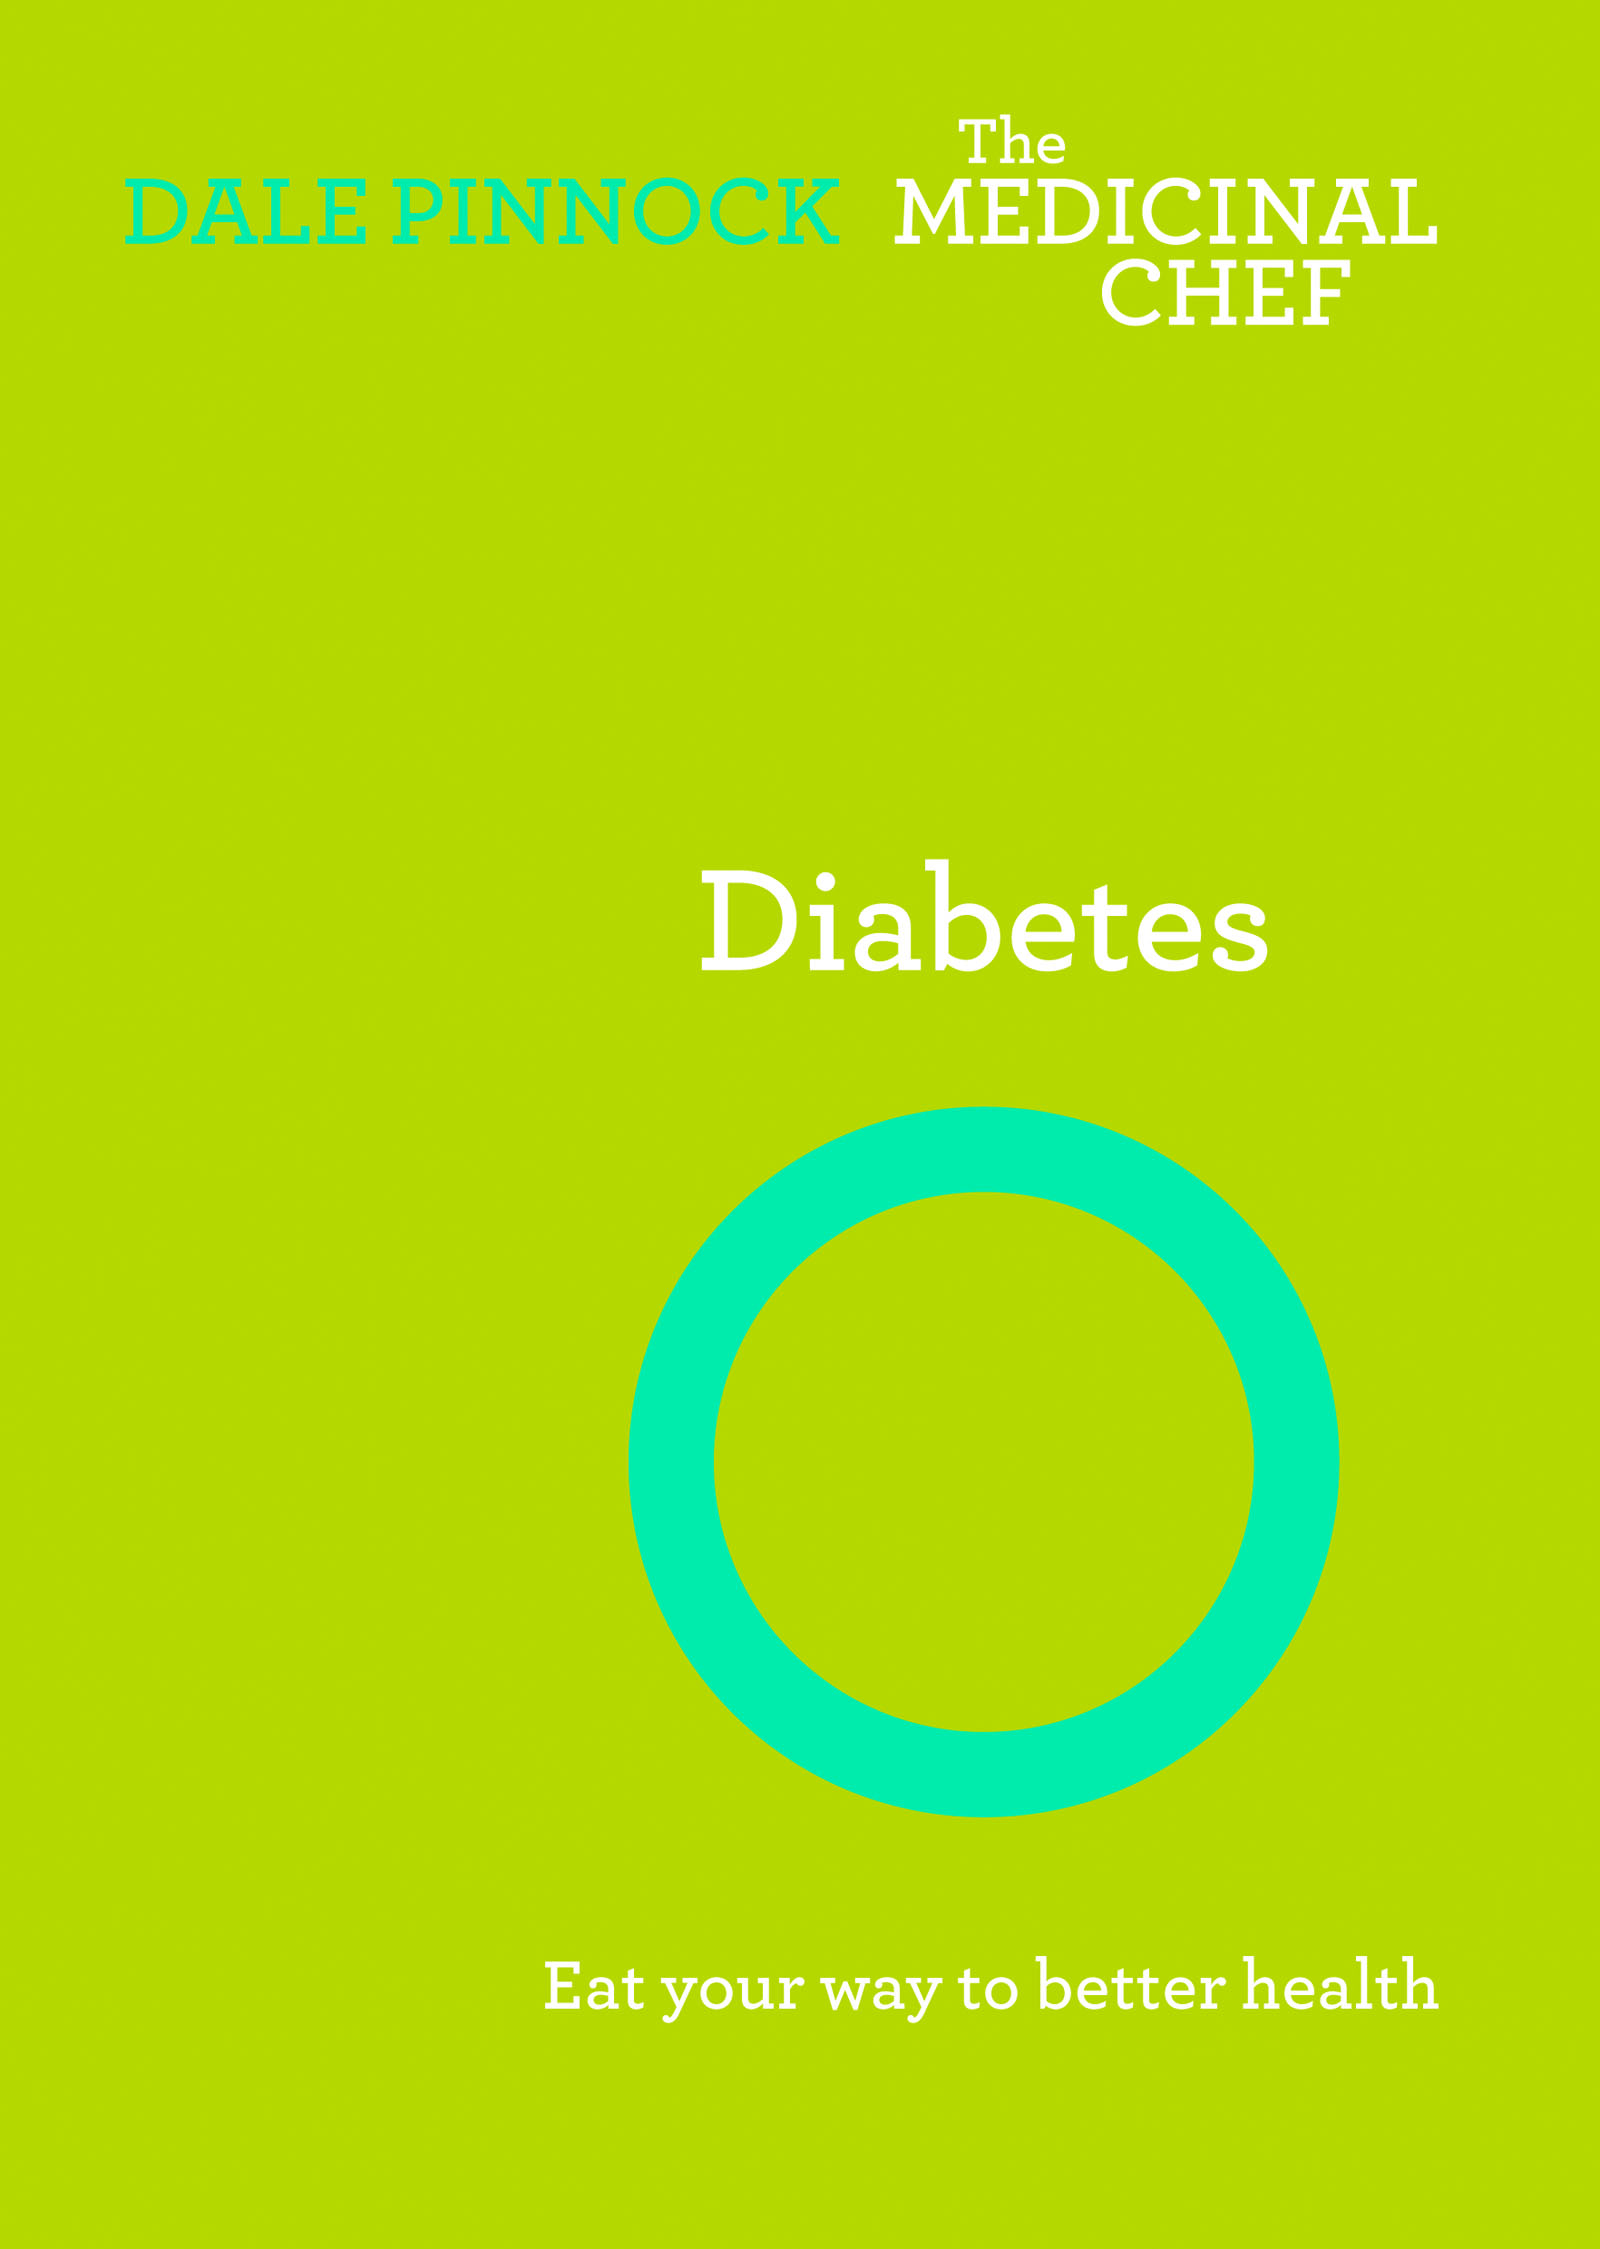 How type-2 diabetes and pre-diabetes are diagnosed